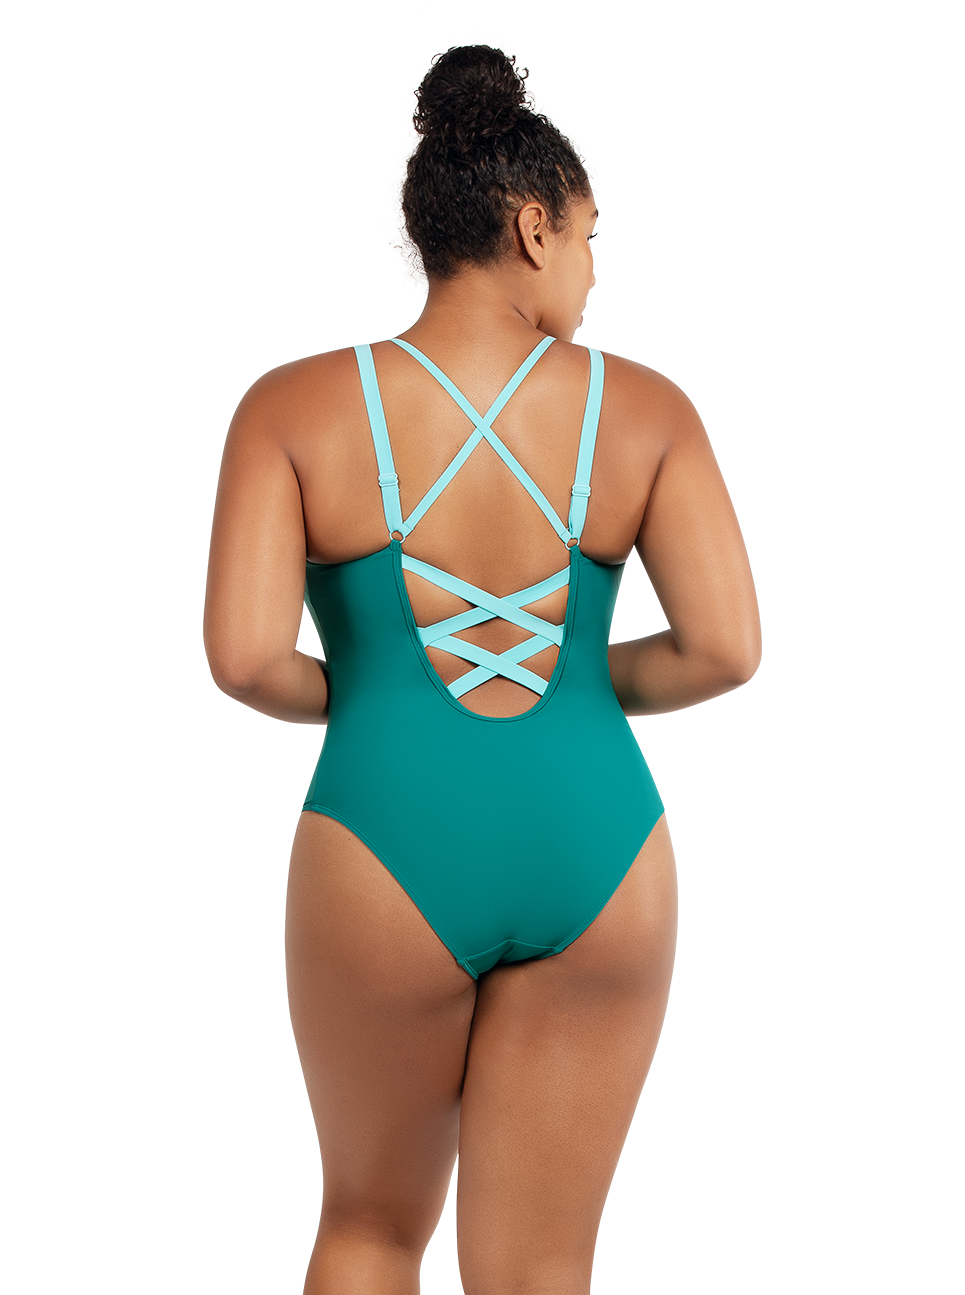 PARFAIT Lauren OnePieceSwimsuitS8226 DarkMintWTlbetanStone Back - Lauren One Piece Swimsuit Dark Mint w Tibetan Stone S8226